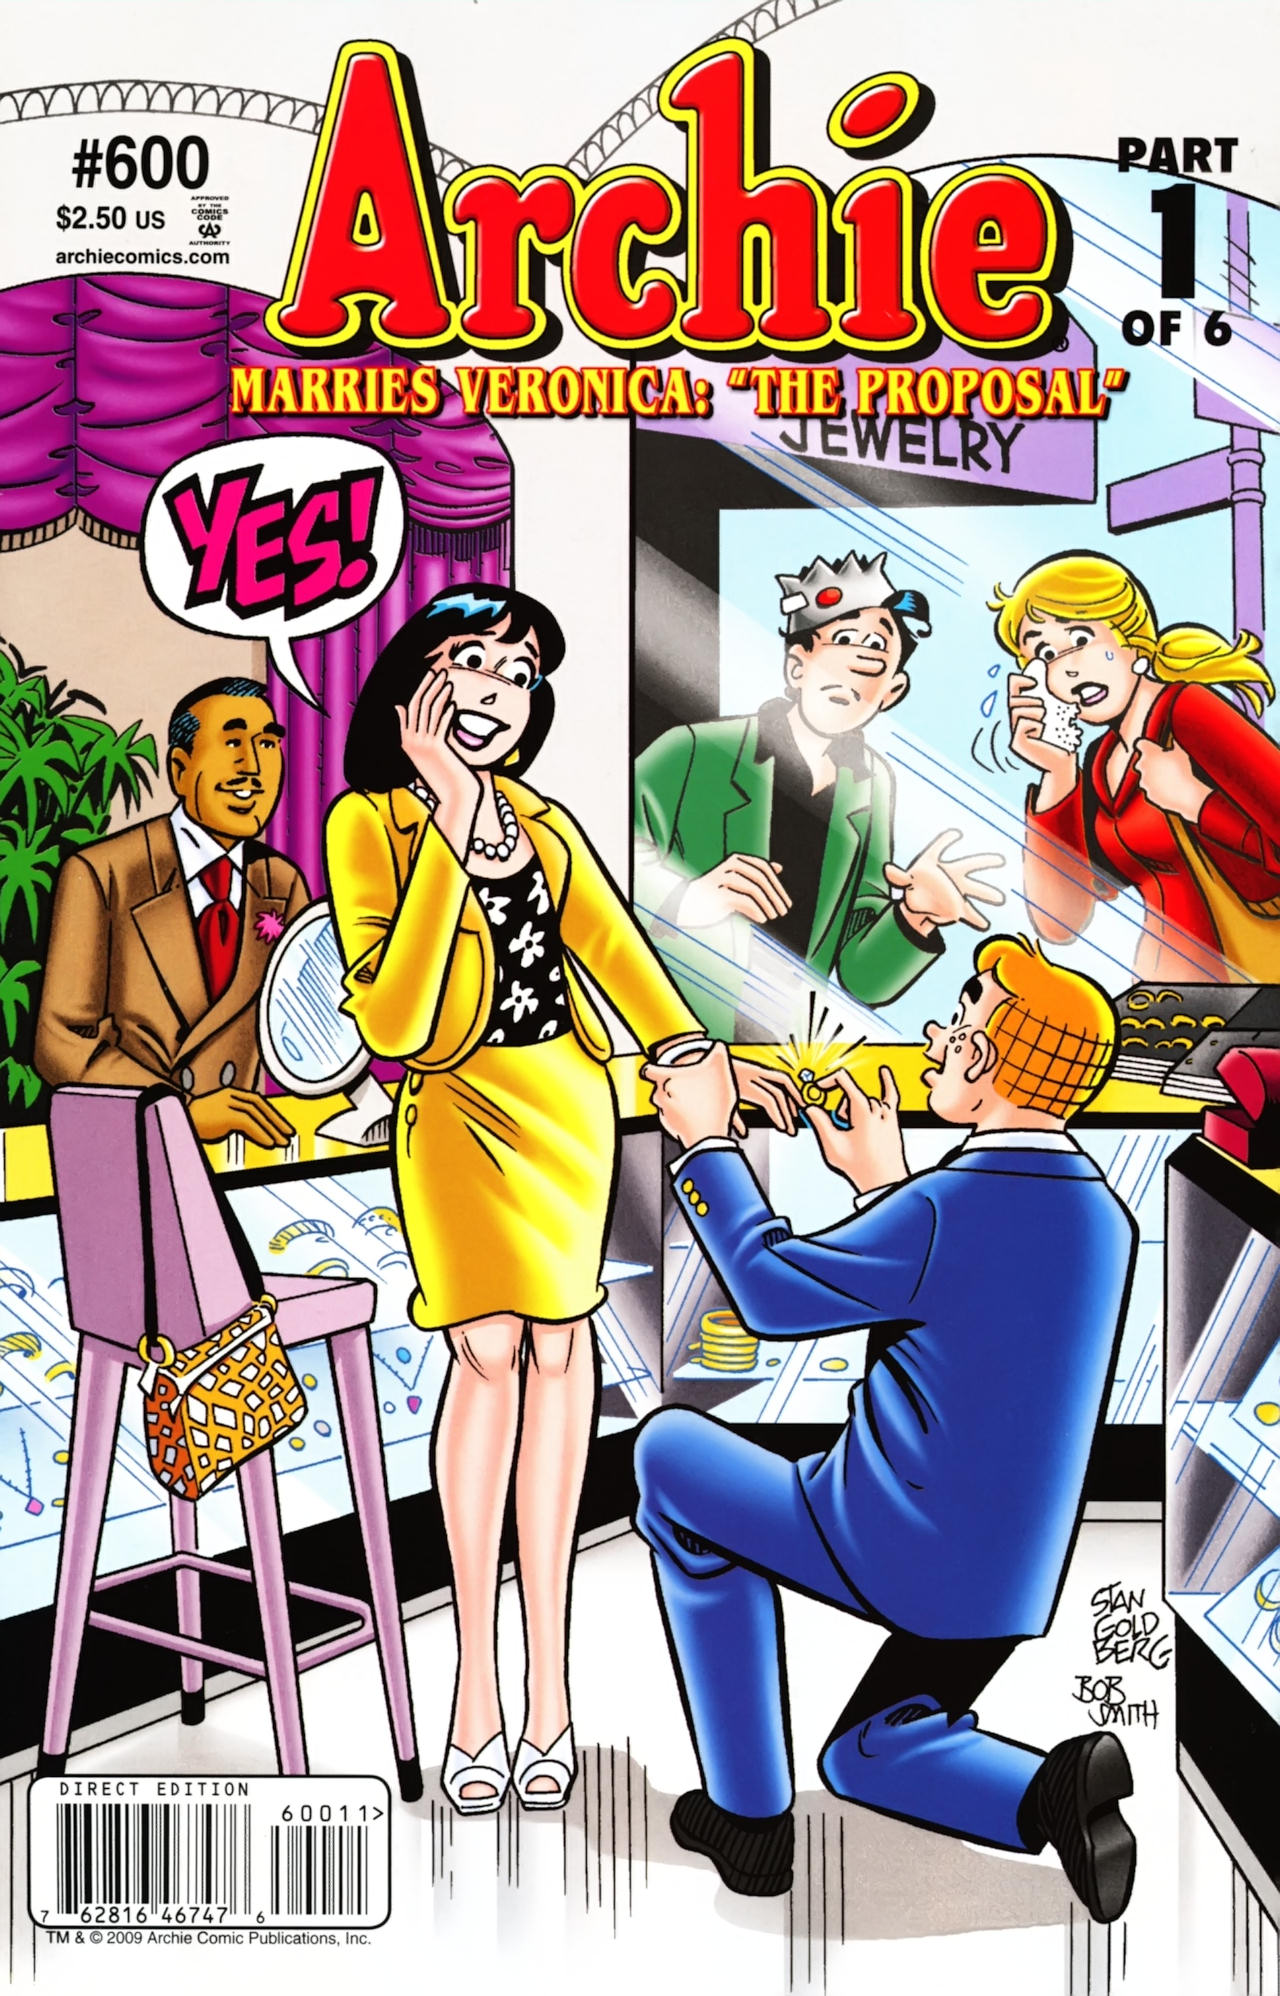 Archie (1960) #600, cover penciled by Stan Goldberg & inked by Bob Smith.